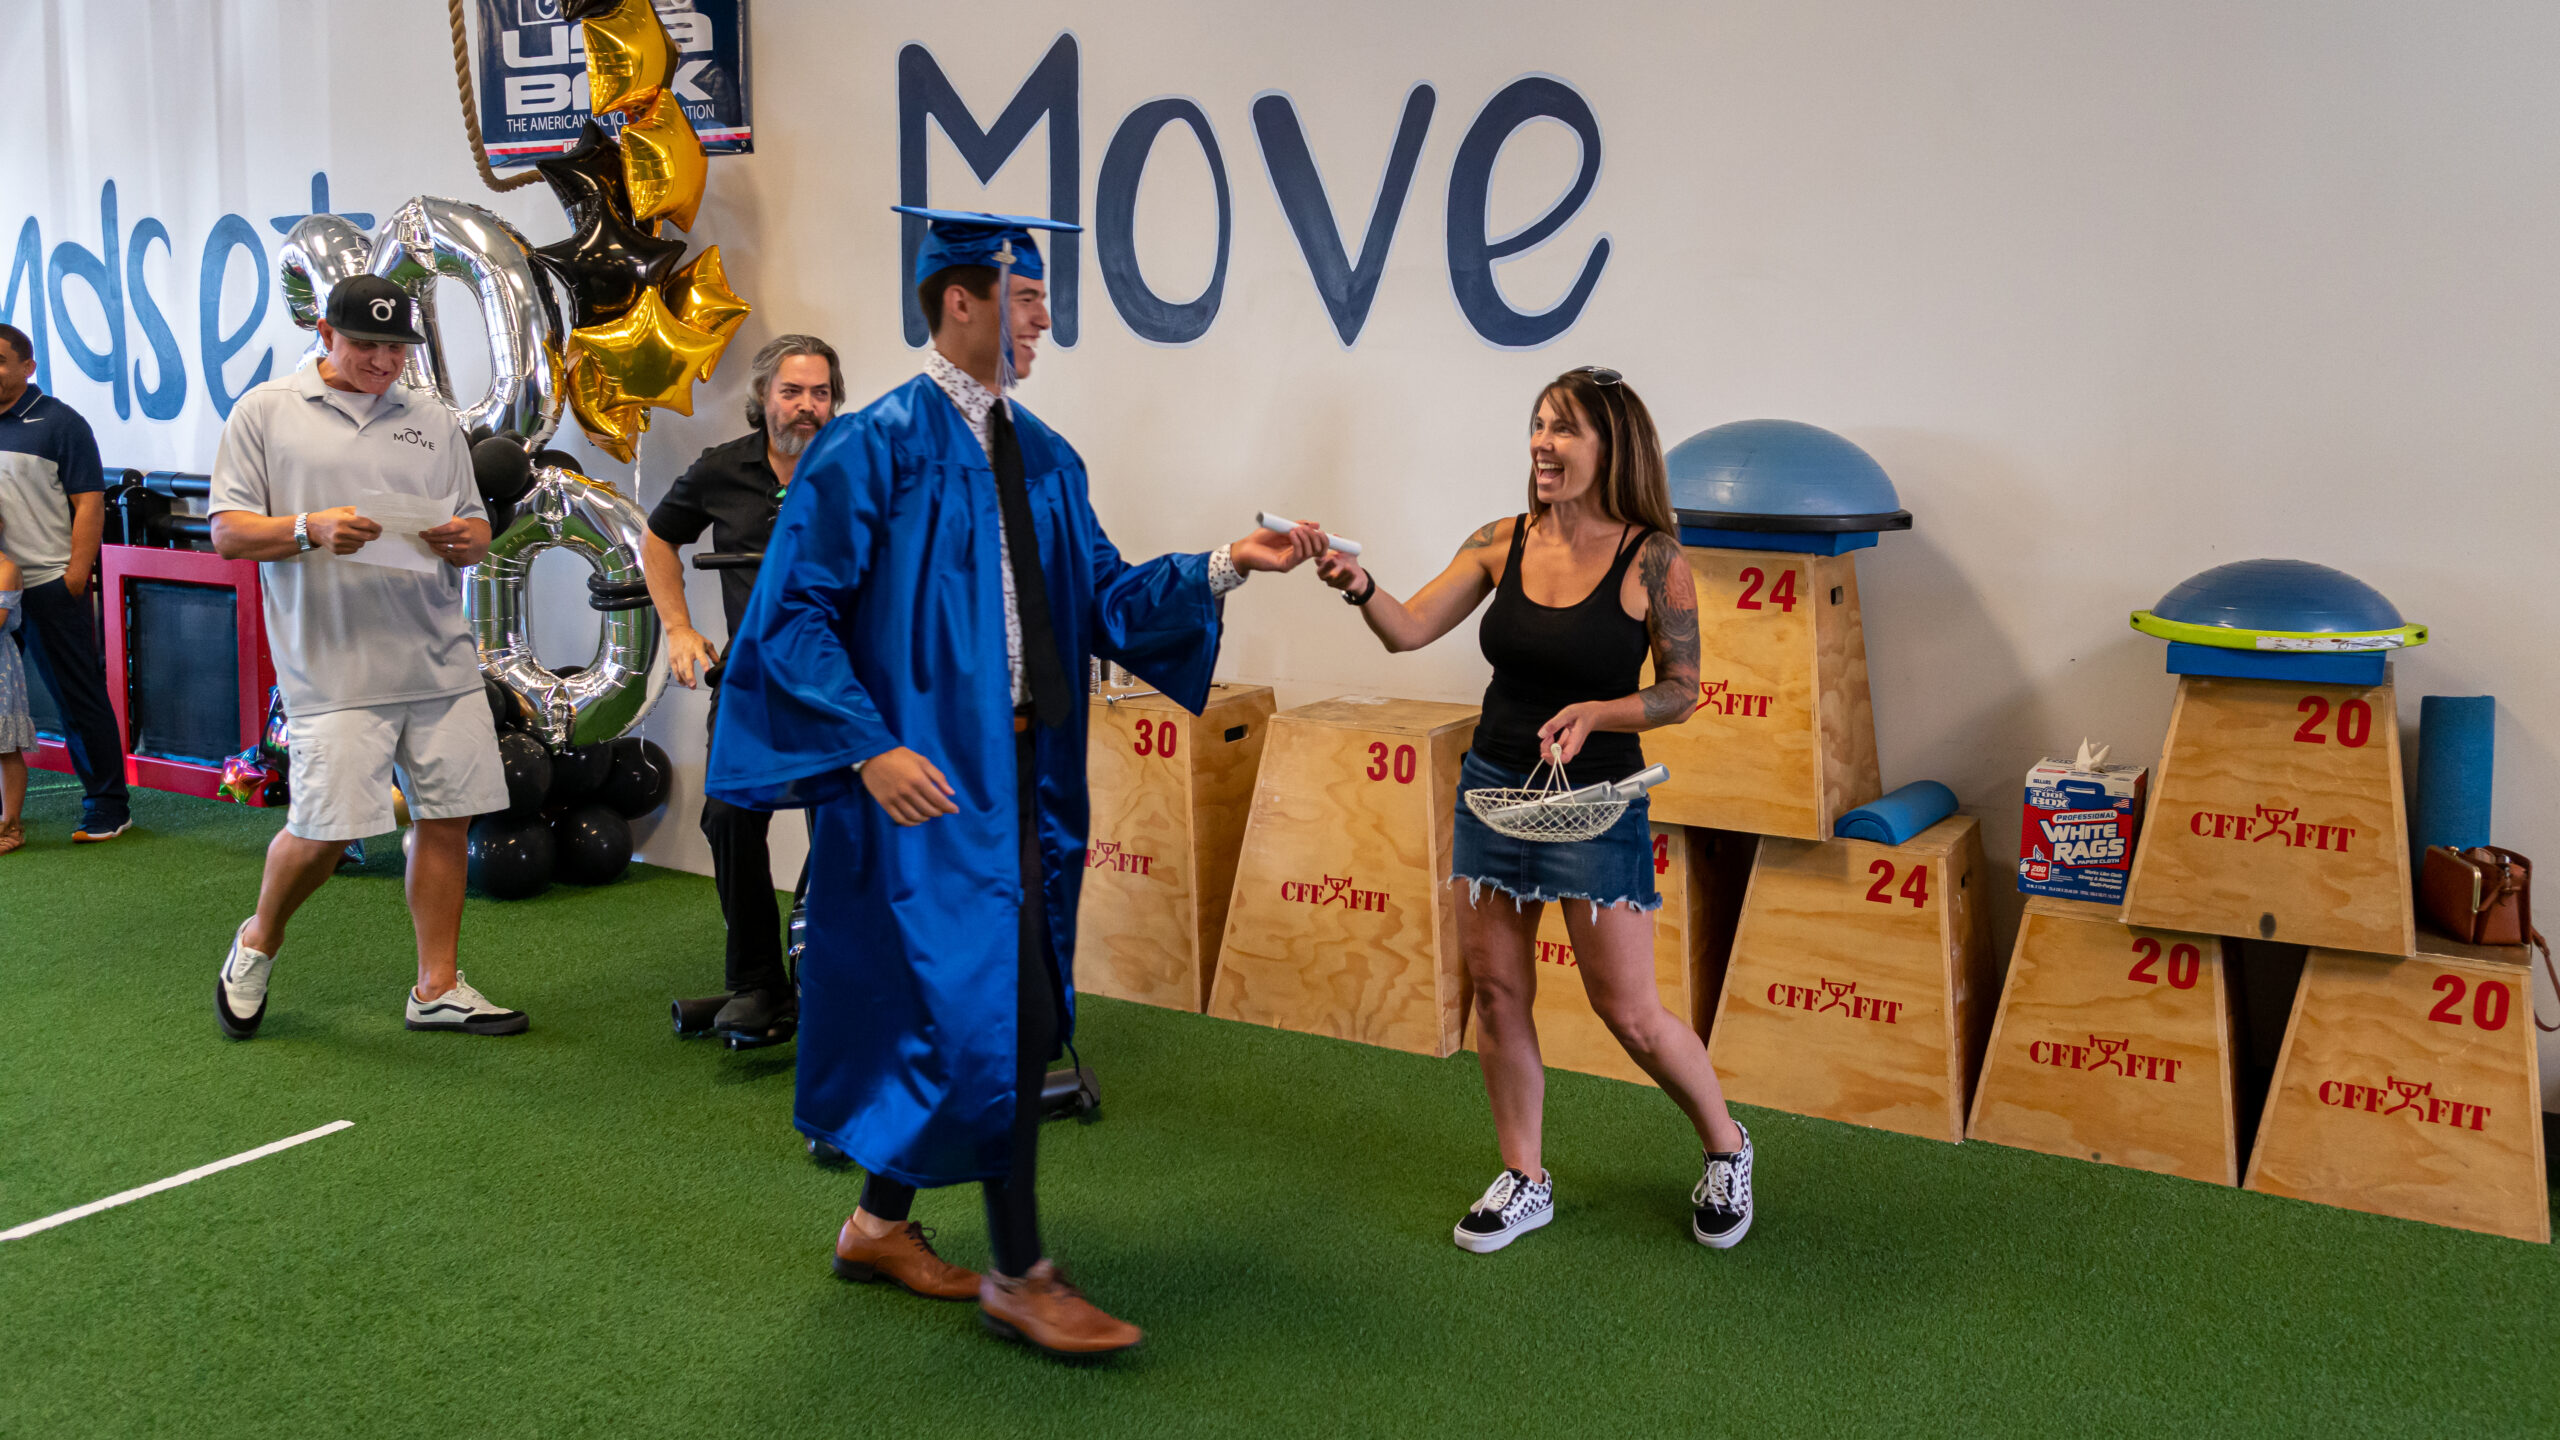 Physical Therapy Move Graduation